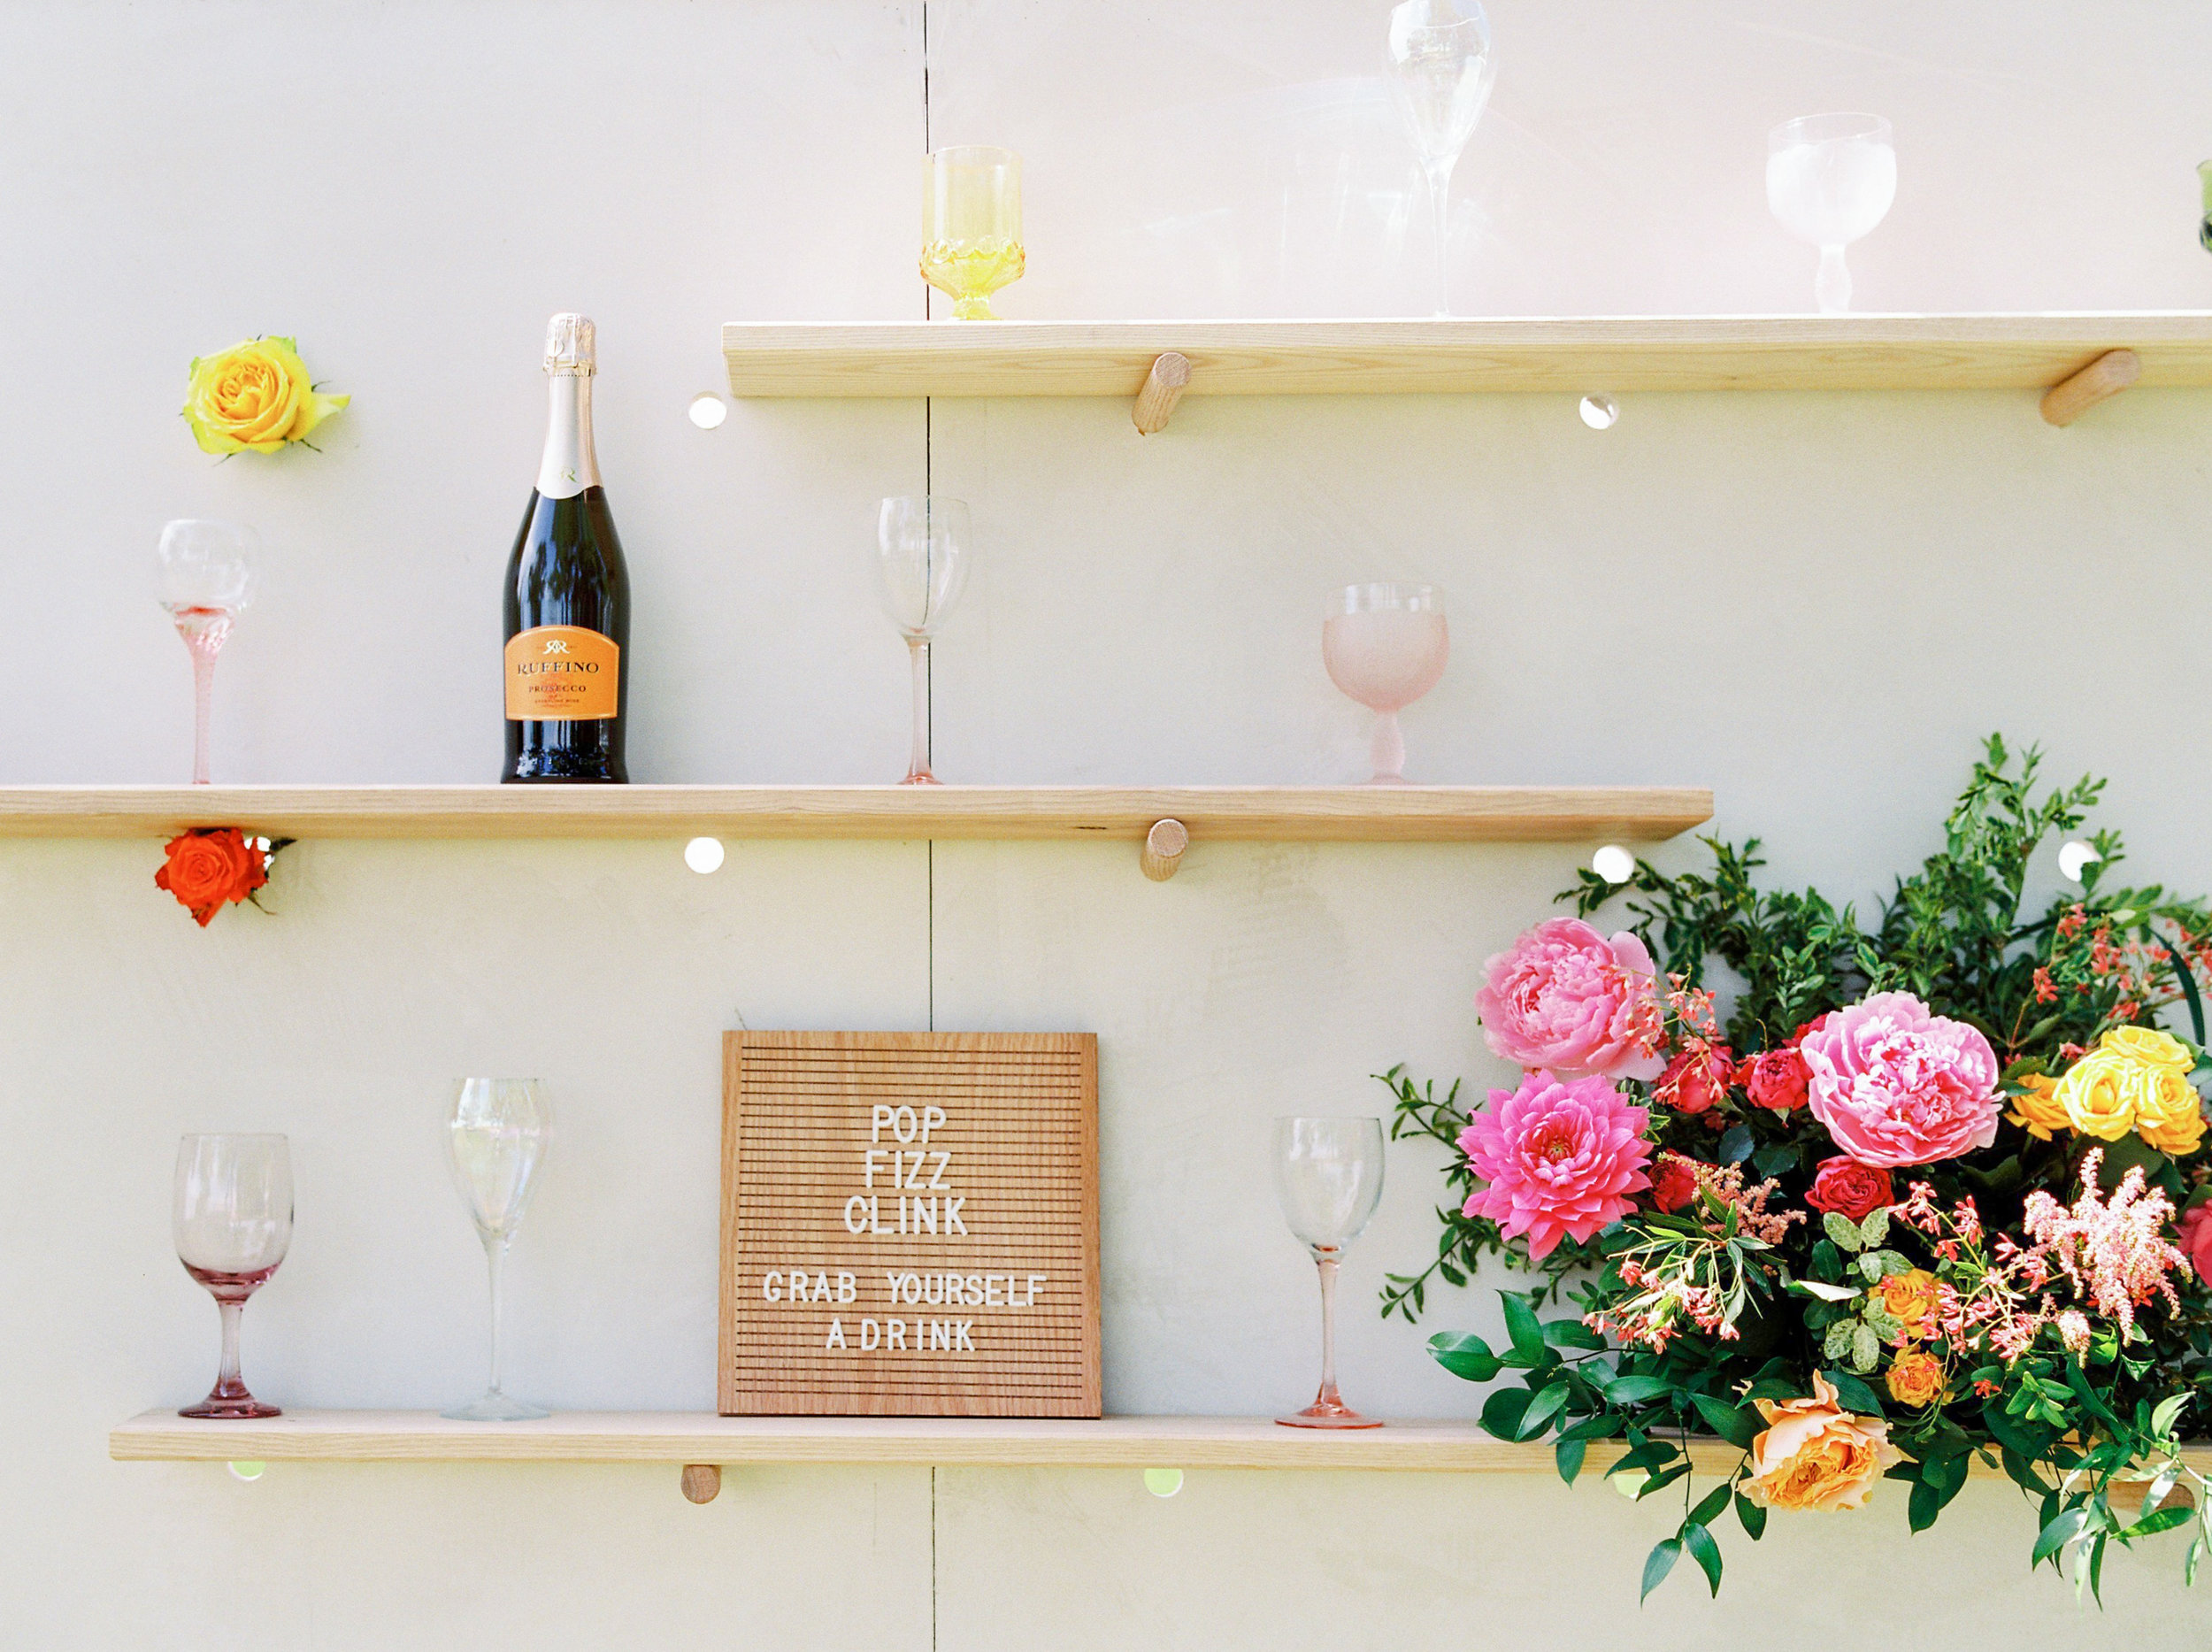 Farmhouse Chic: A Vibrant and Playful Wedding Inspiration Shoot at the Gathered - on the Bronte Bride Blog